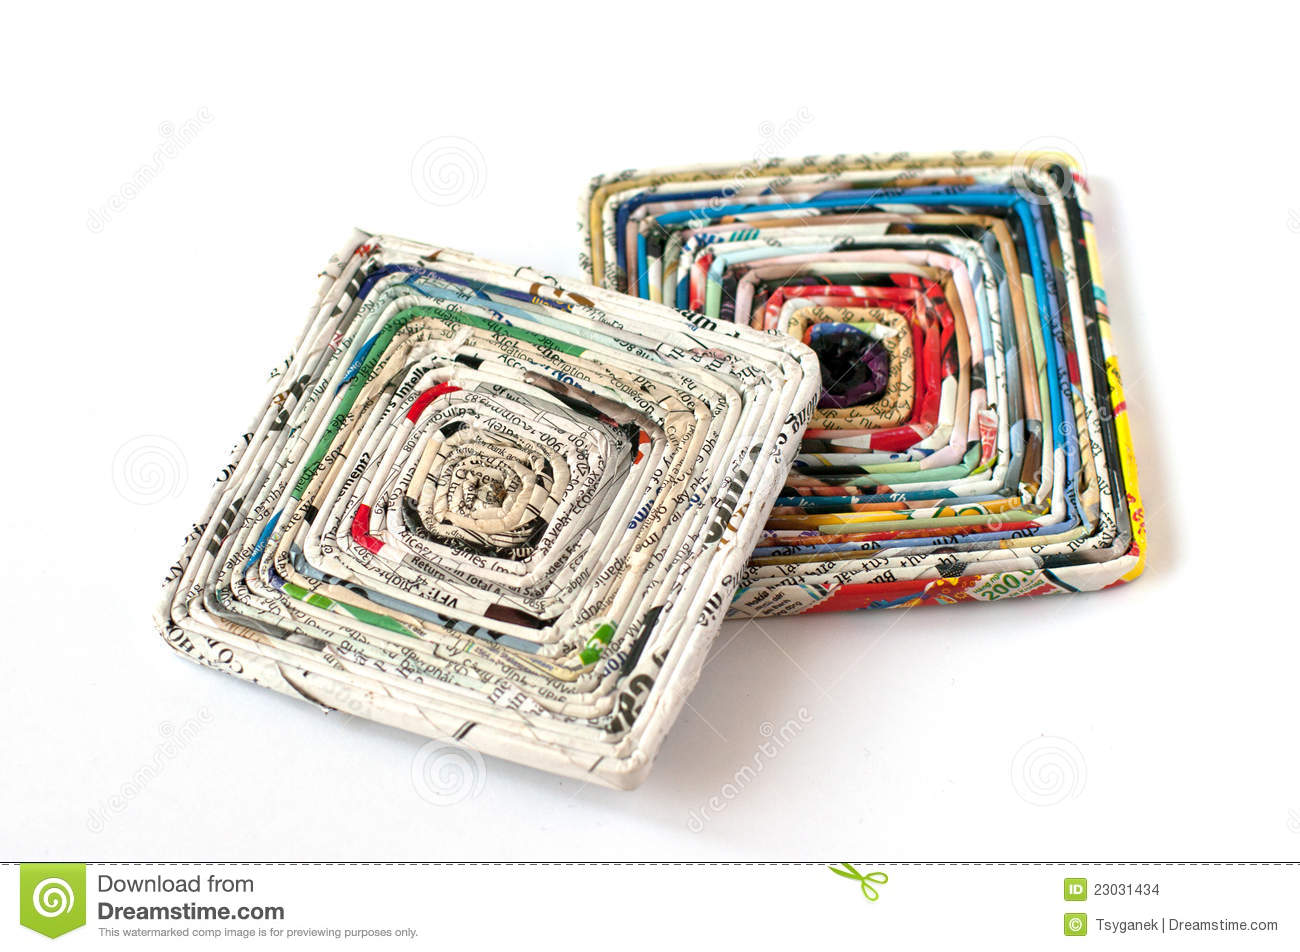 Paper Coasters Made Of Old Magazines Stock Photo Image Of Glossy - Coasters made from photos